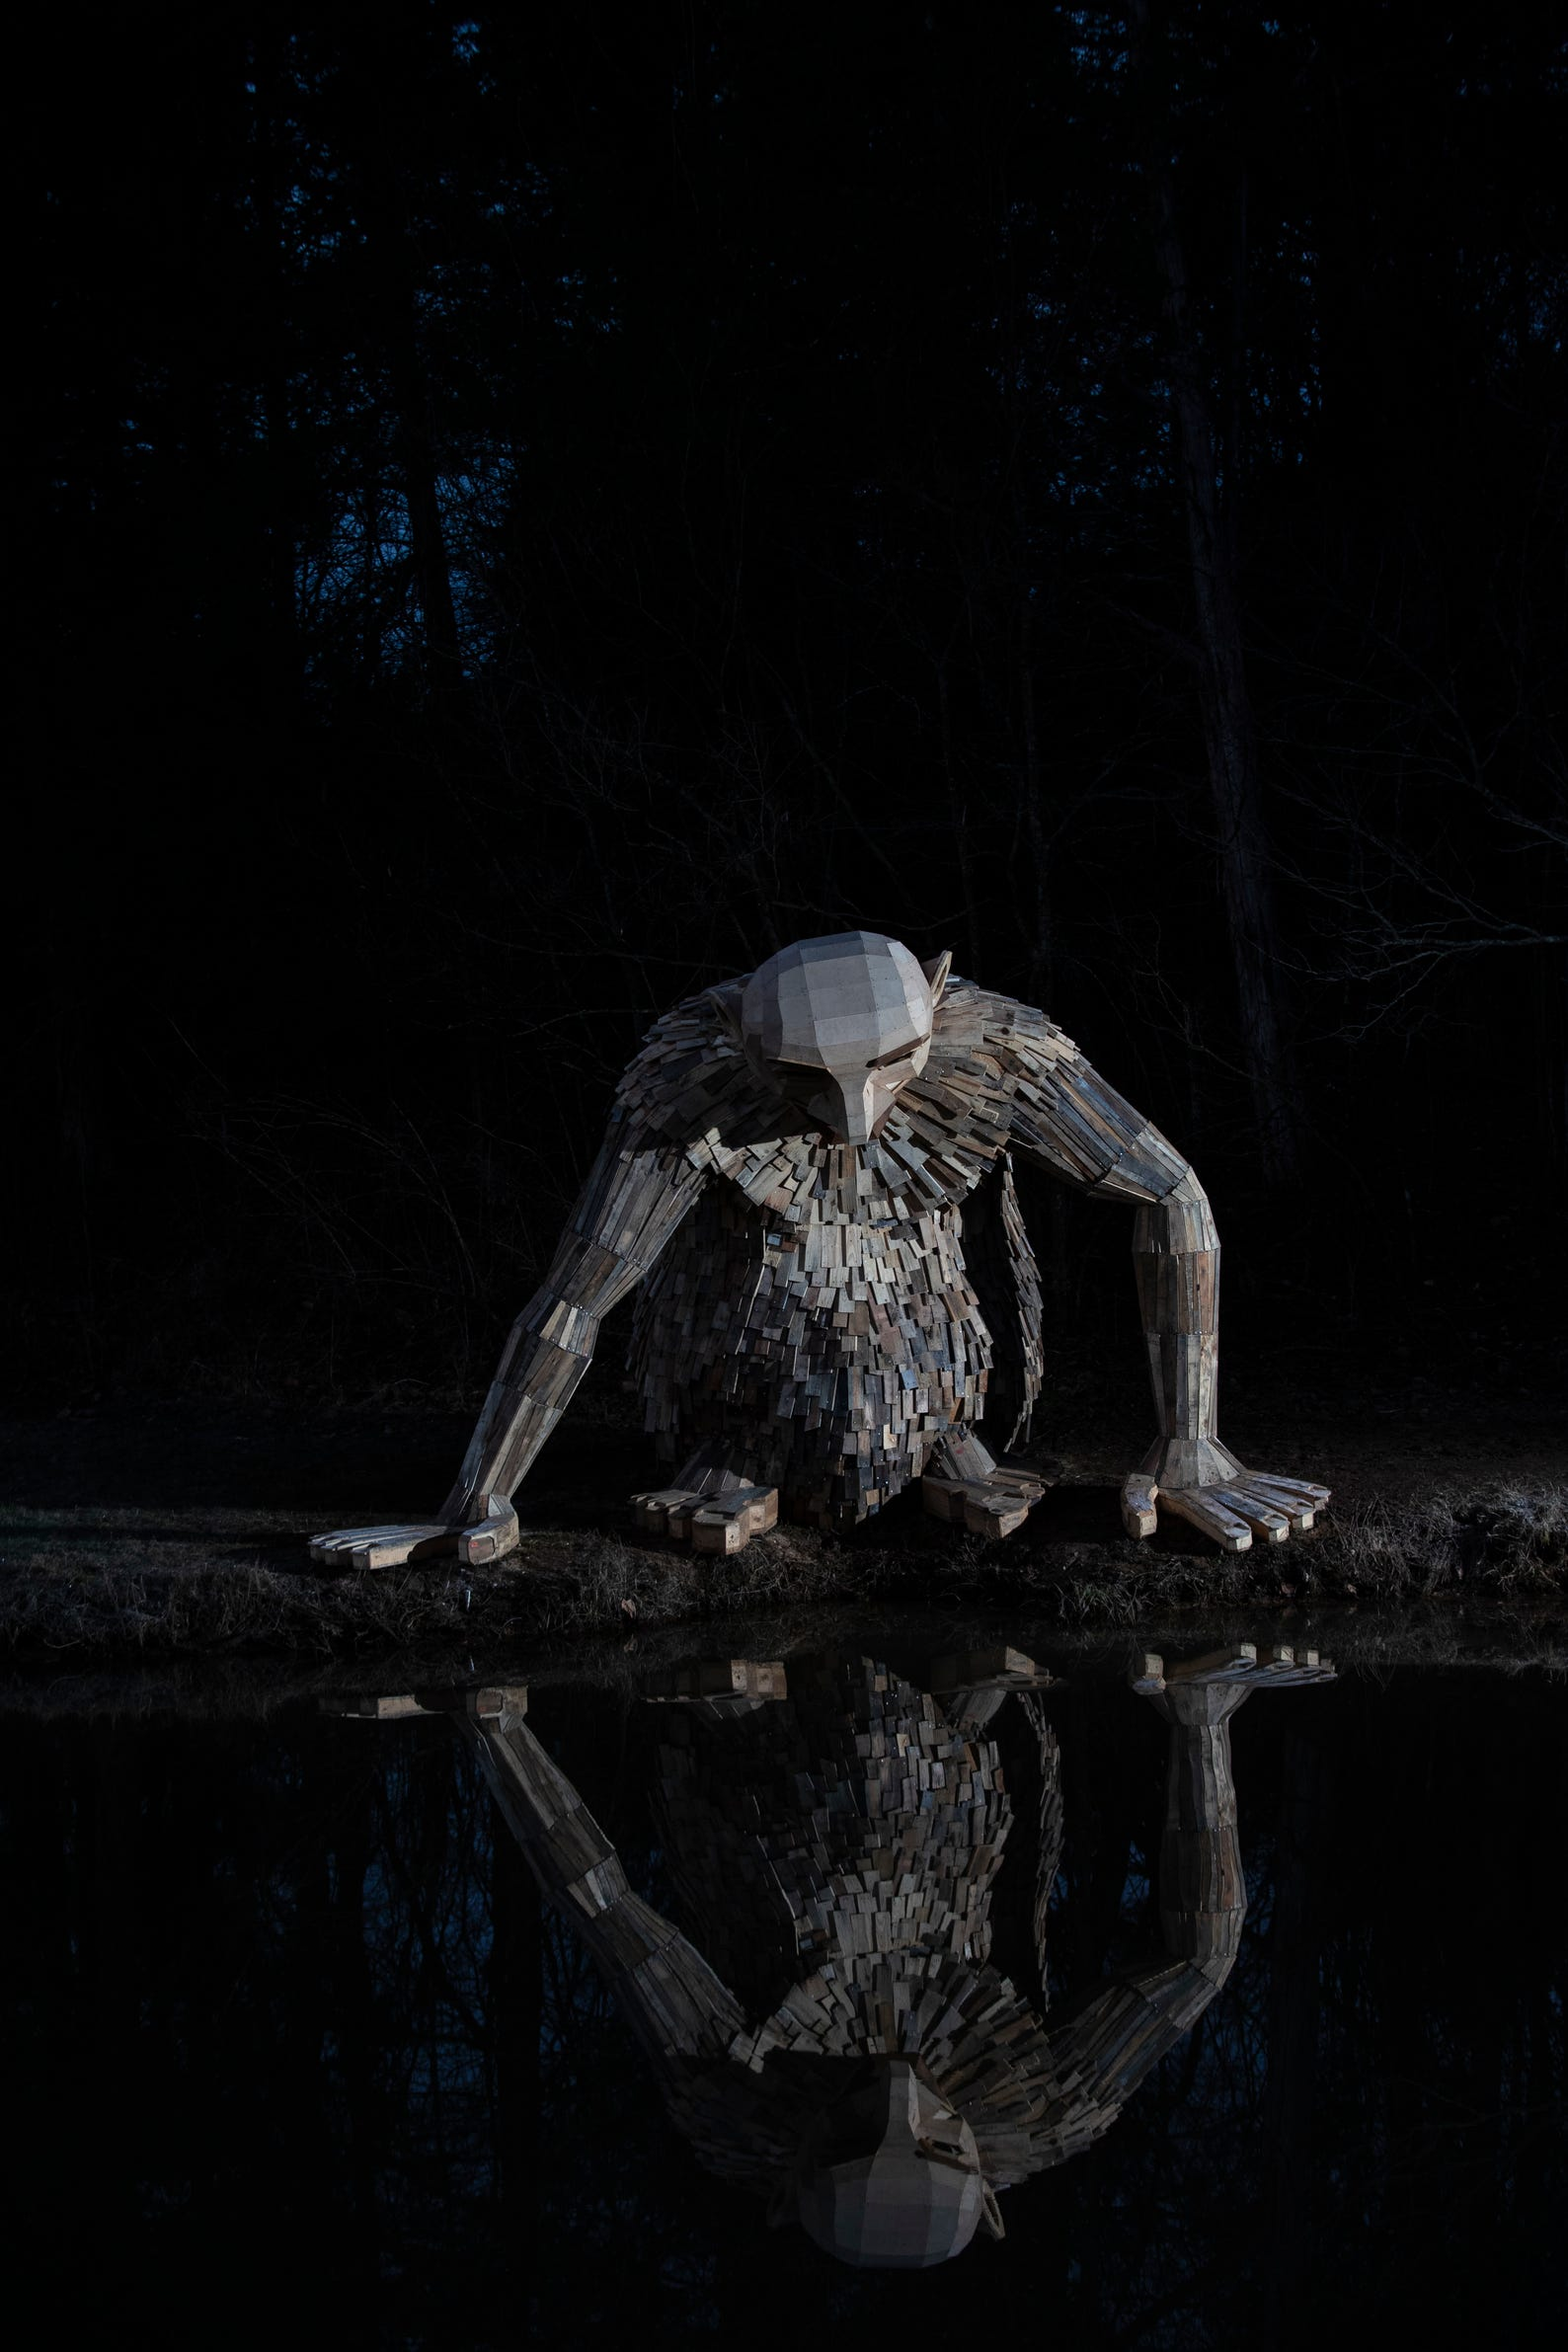 """Little Nis,"" gazes into the waters of Holly Pond at Bernheim Forest. His is one of three giant trolls created by sculptor Thomas Dambo. Feb. 27, 2019"